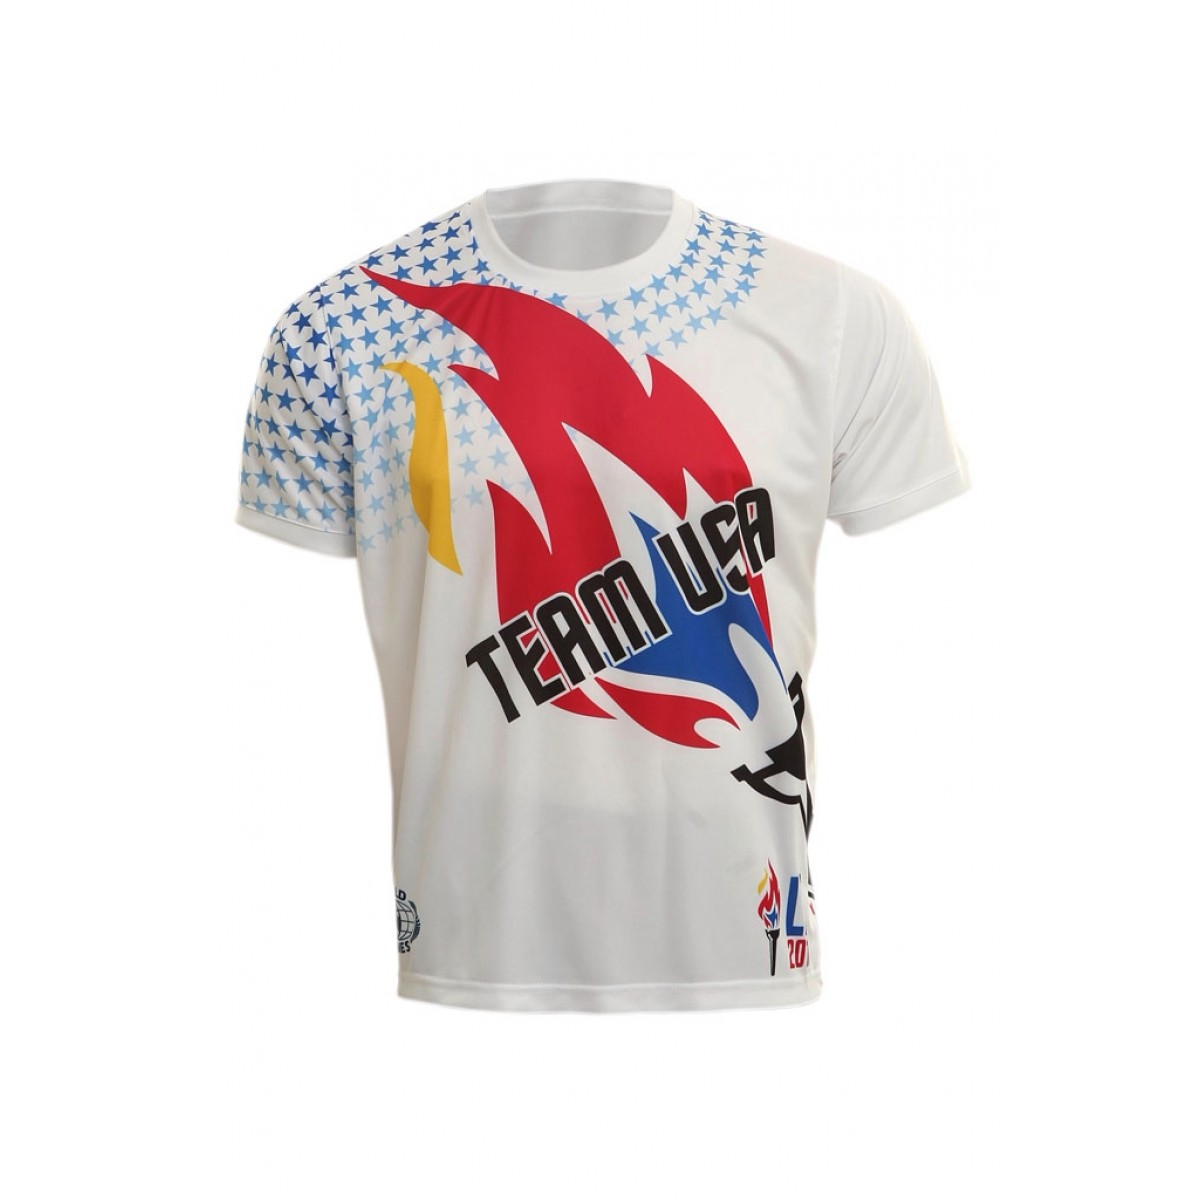 TEAM USA Sublimated T-shirt-XS